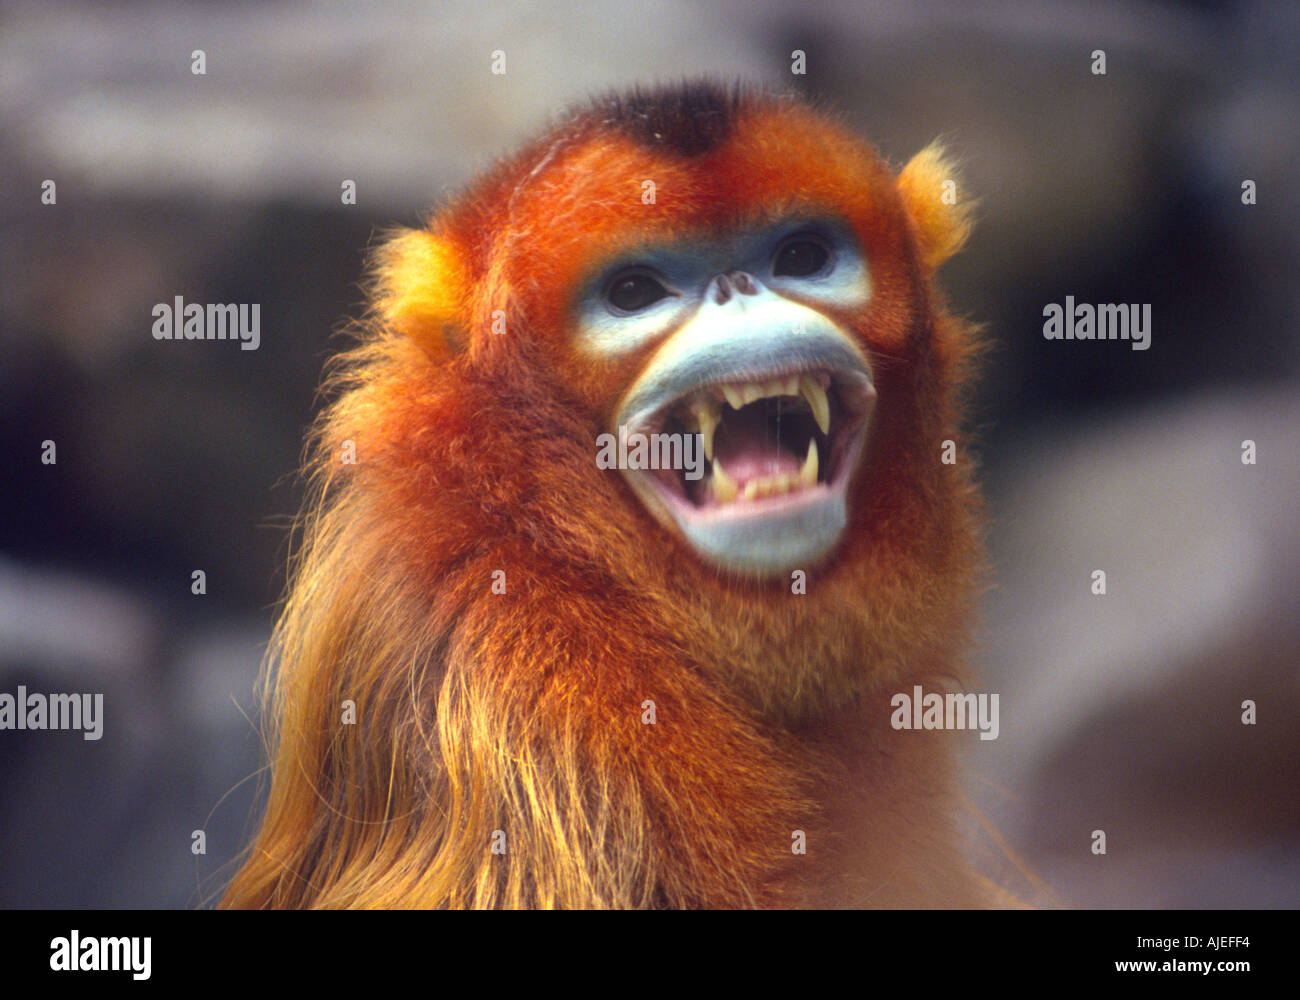 Golden monkey Rhinopithecus roxellanae endangered species of southwest China - Stock Image